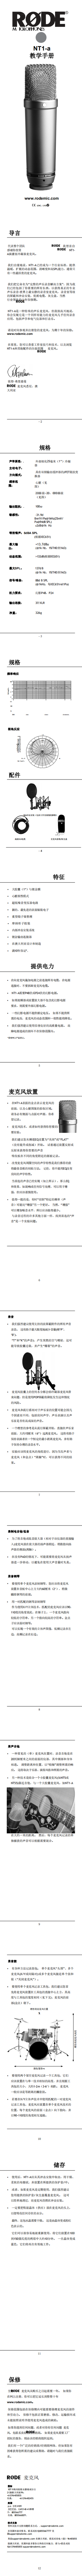 NT1-A_product_manual_1_12_translate_Chinese_0.png